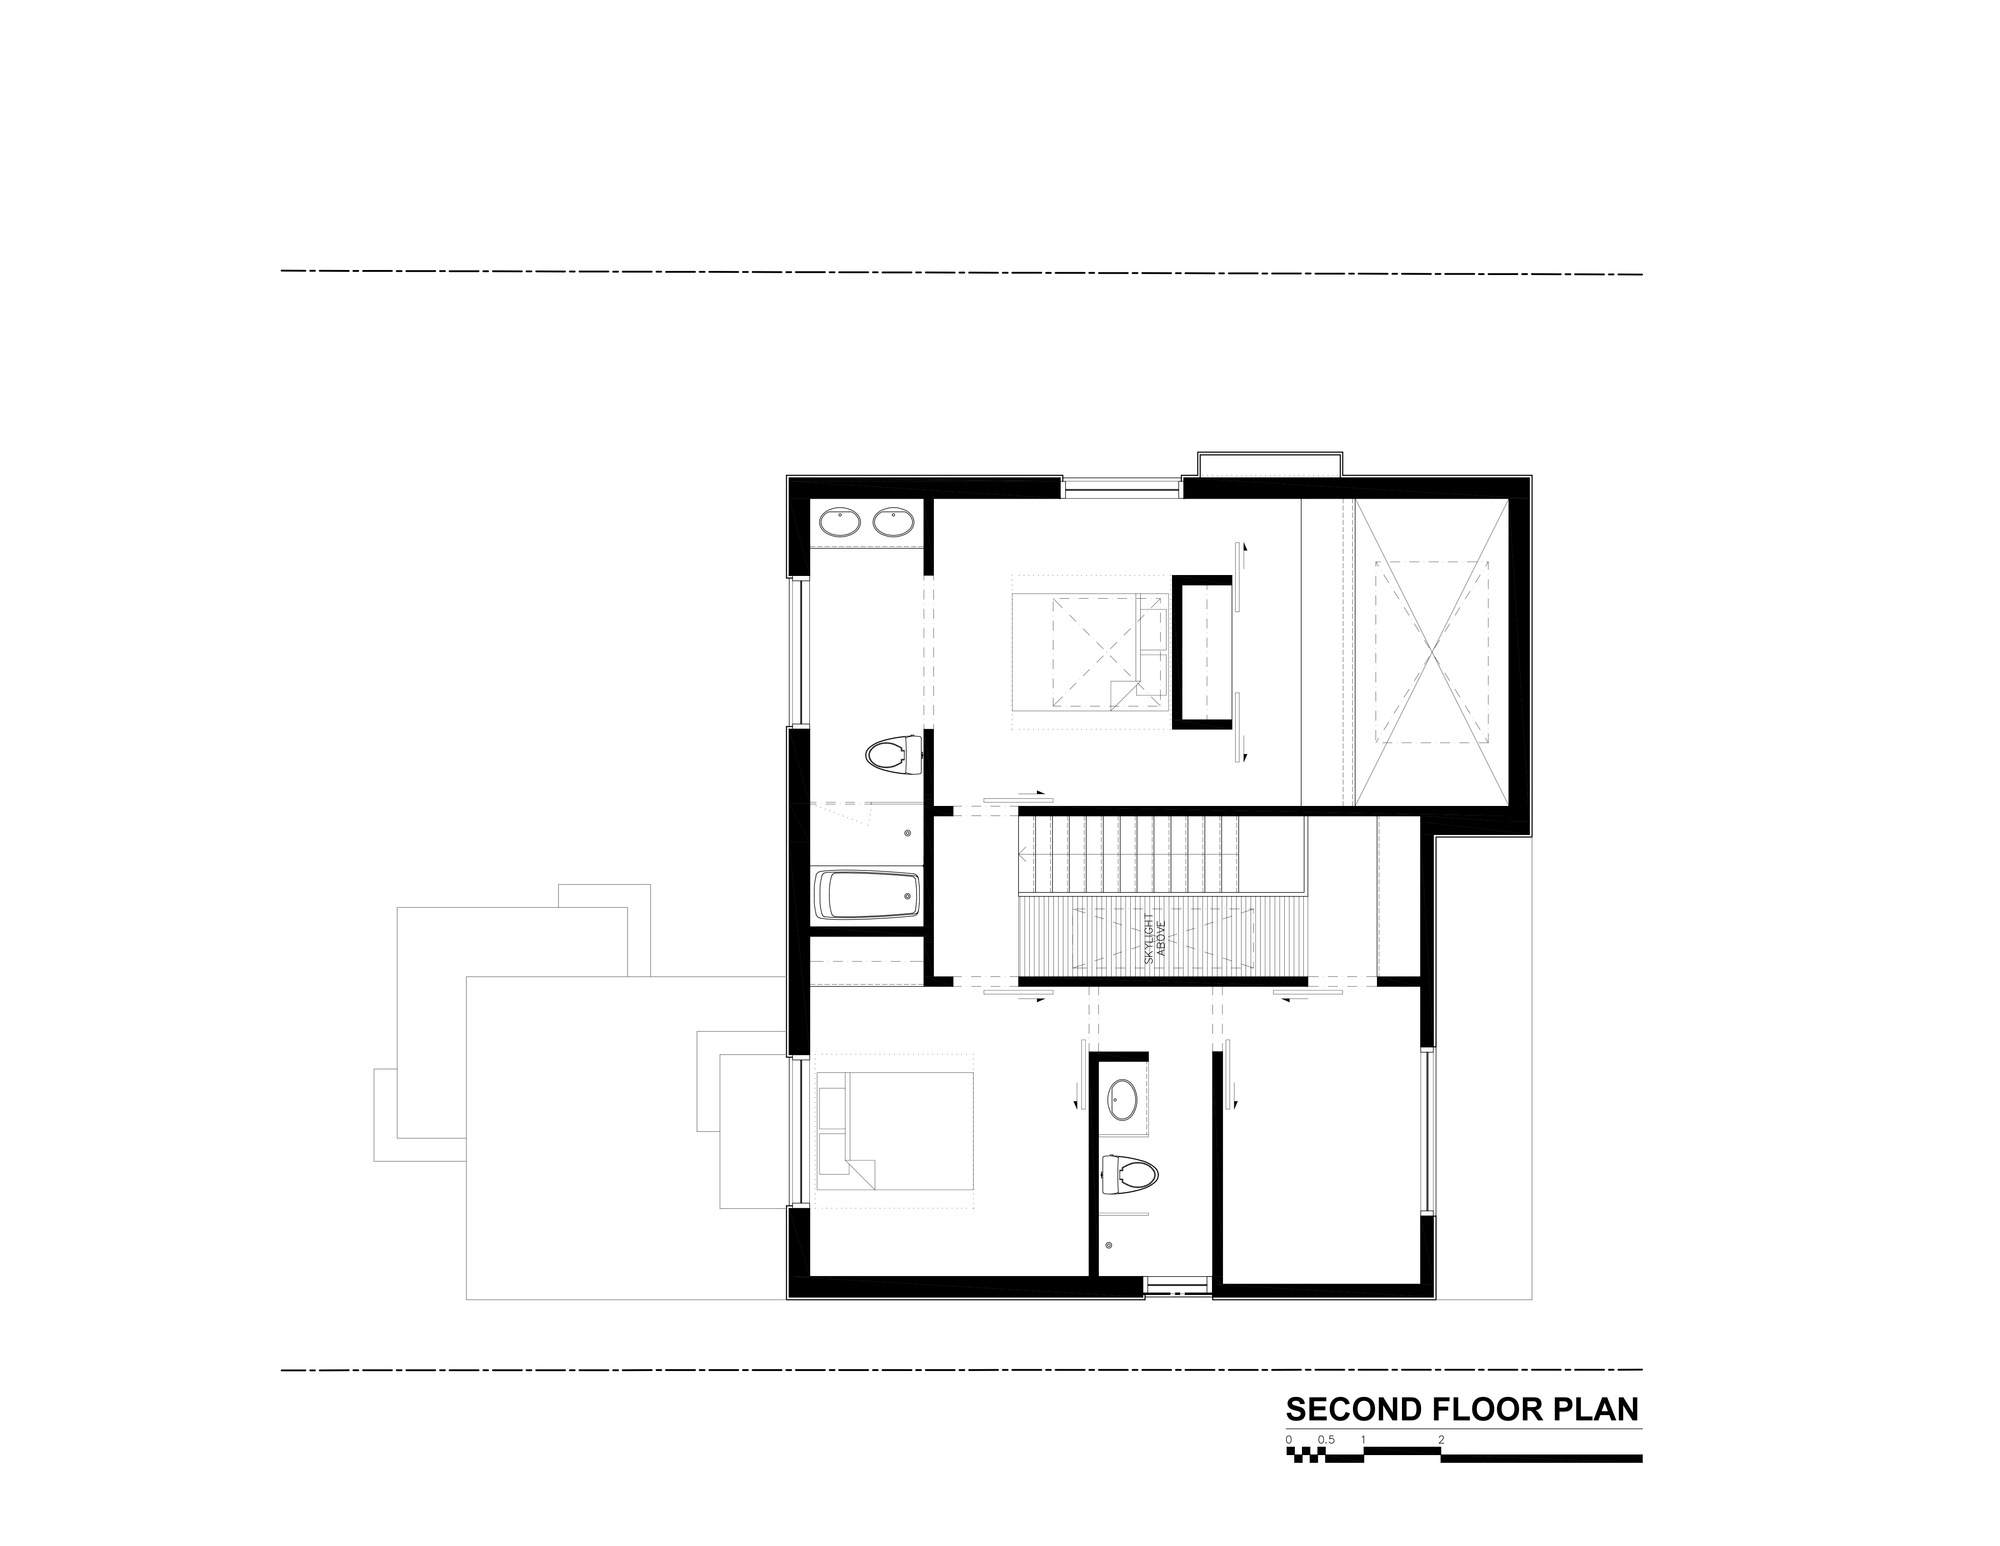 zoom image view original size - Second Floor Floor Plans